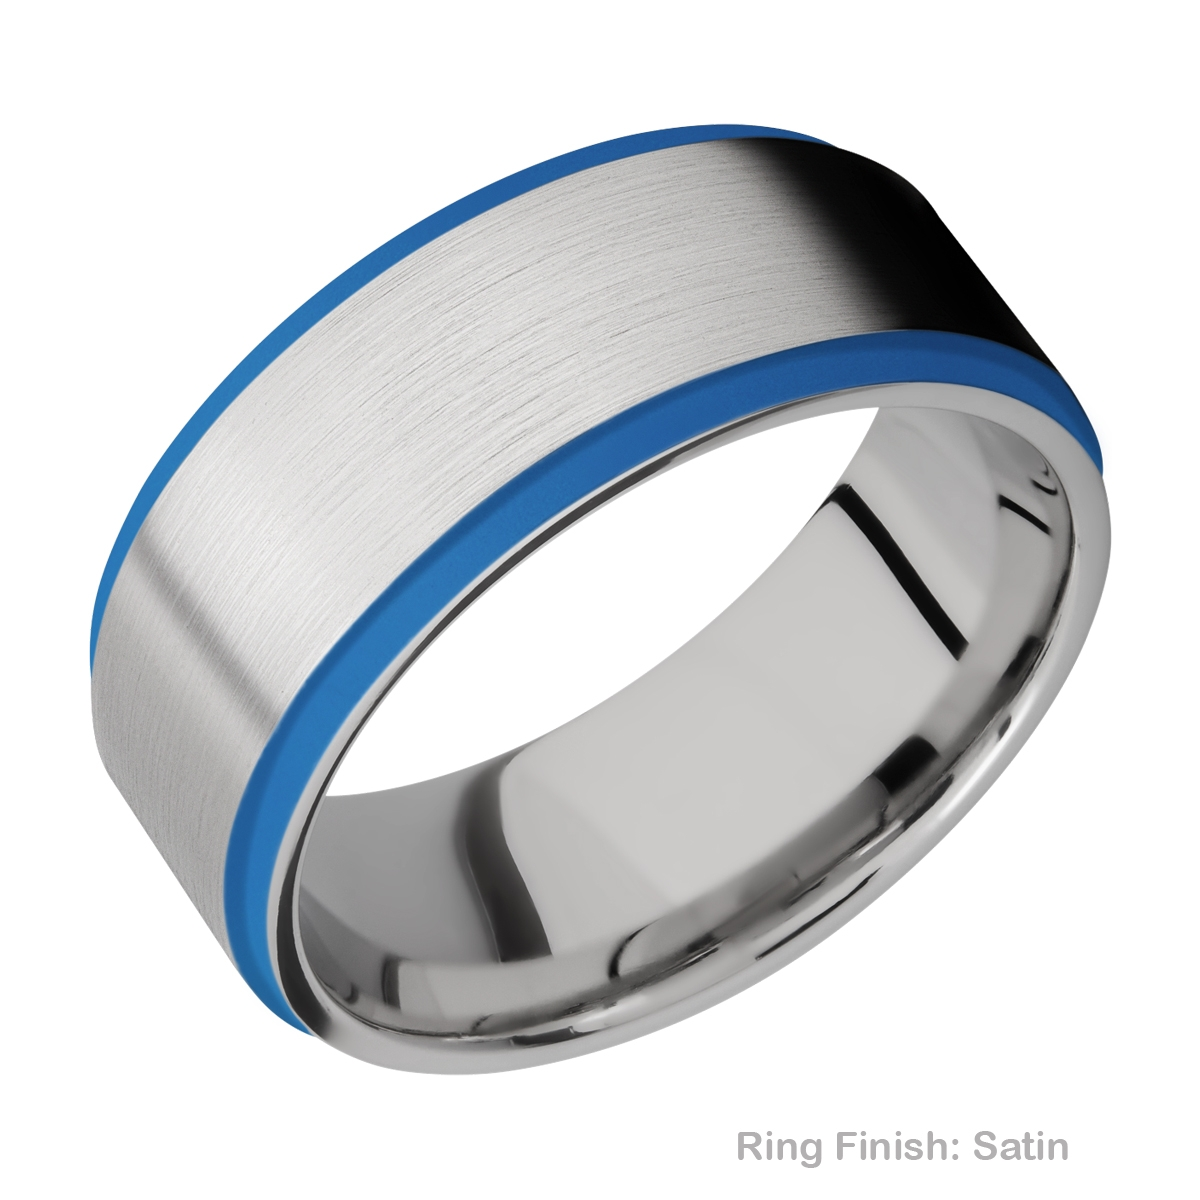 Lashbrook CC10FGE21EDGE/A/CERAKOTE Cobalt Chrome Wedding Ring or Band Alternative View 6